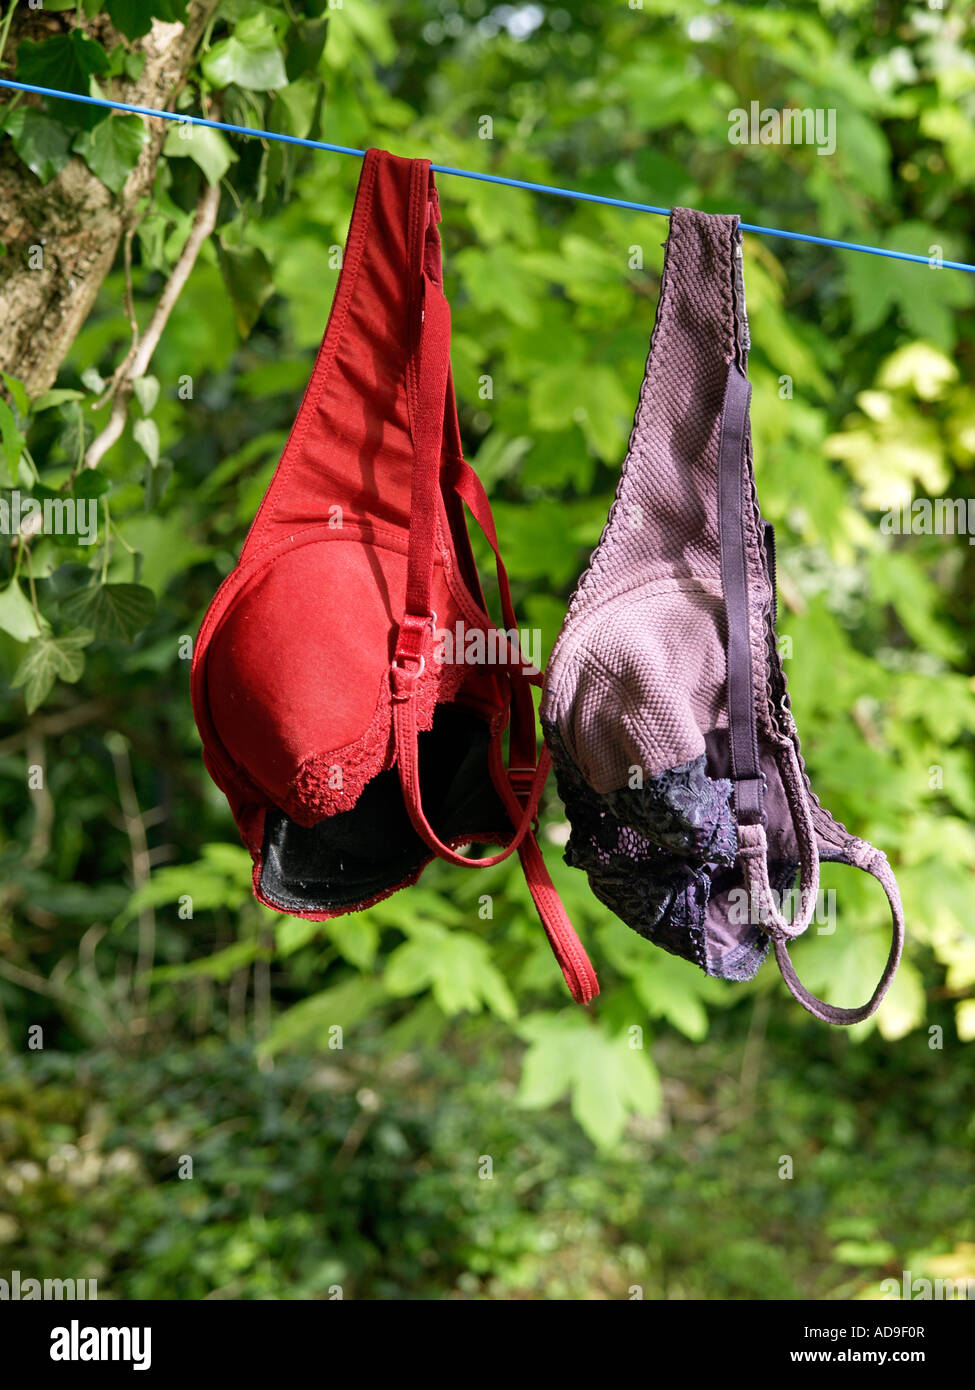 laundry two bras haning on clothesline - Stock Image